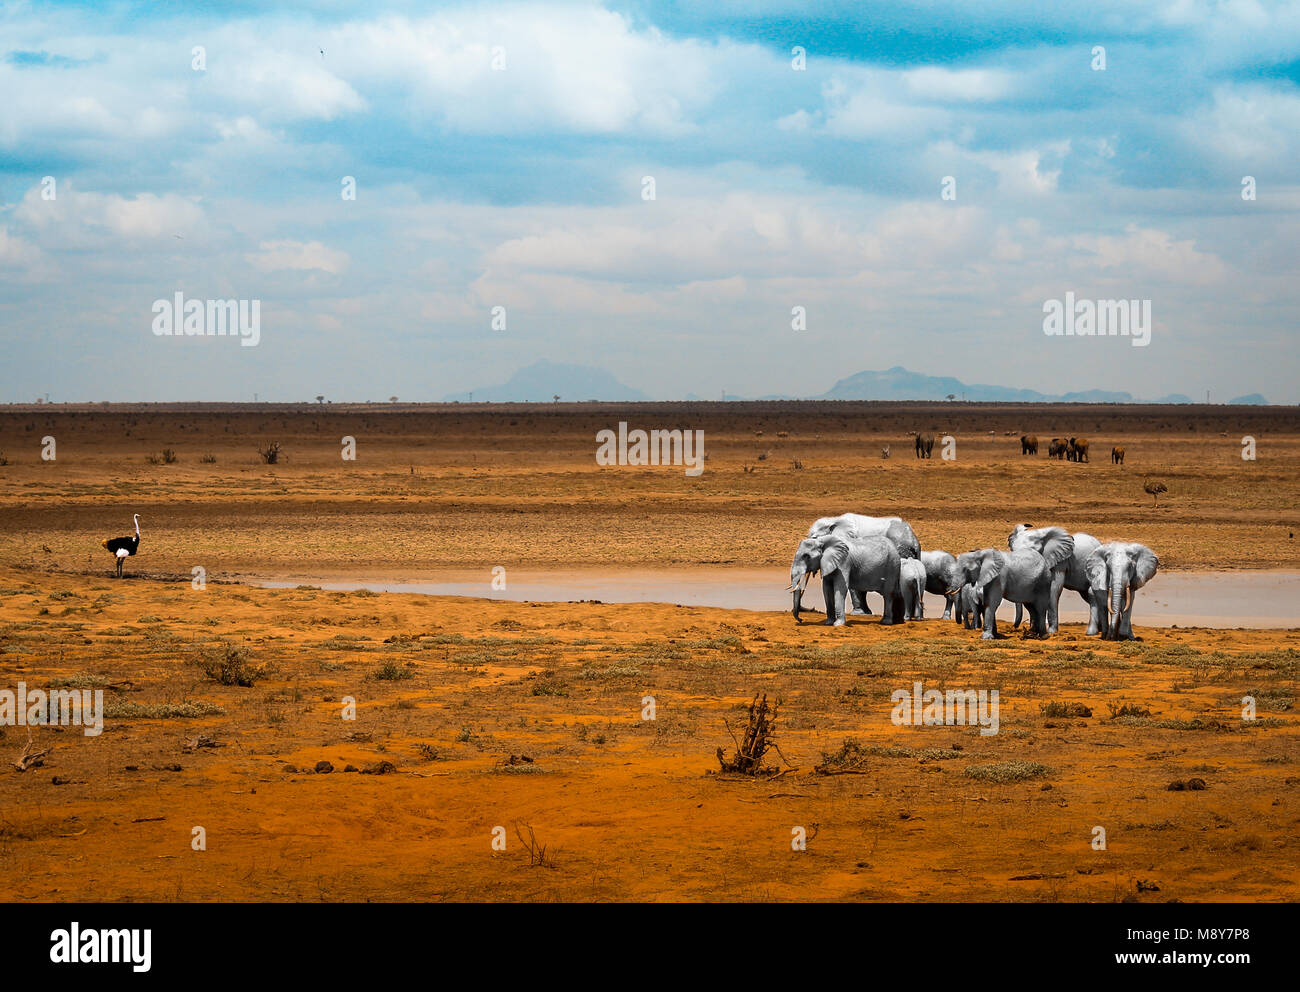 White elephants near a pool of water together with an ostrich, in Tsavo National Park in Kenya, Africa - Stock Image